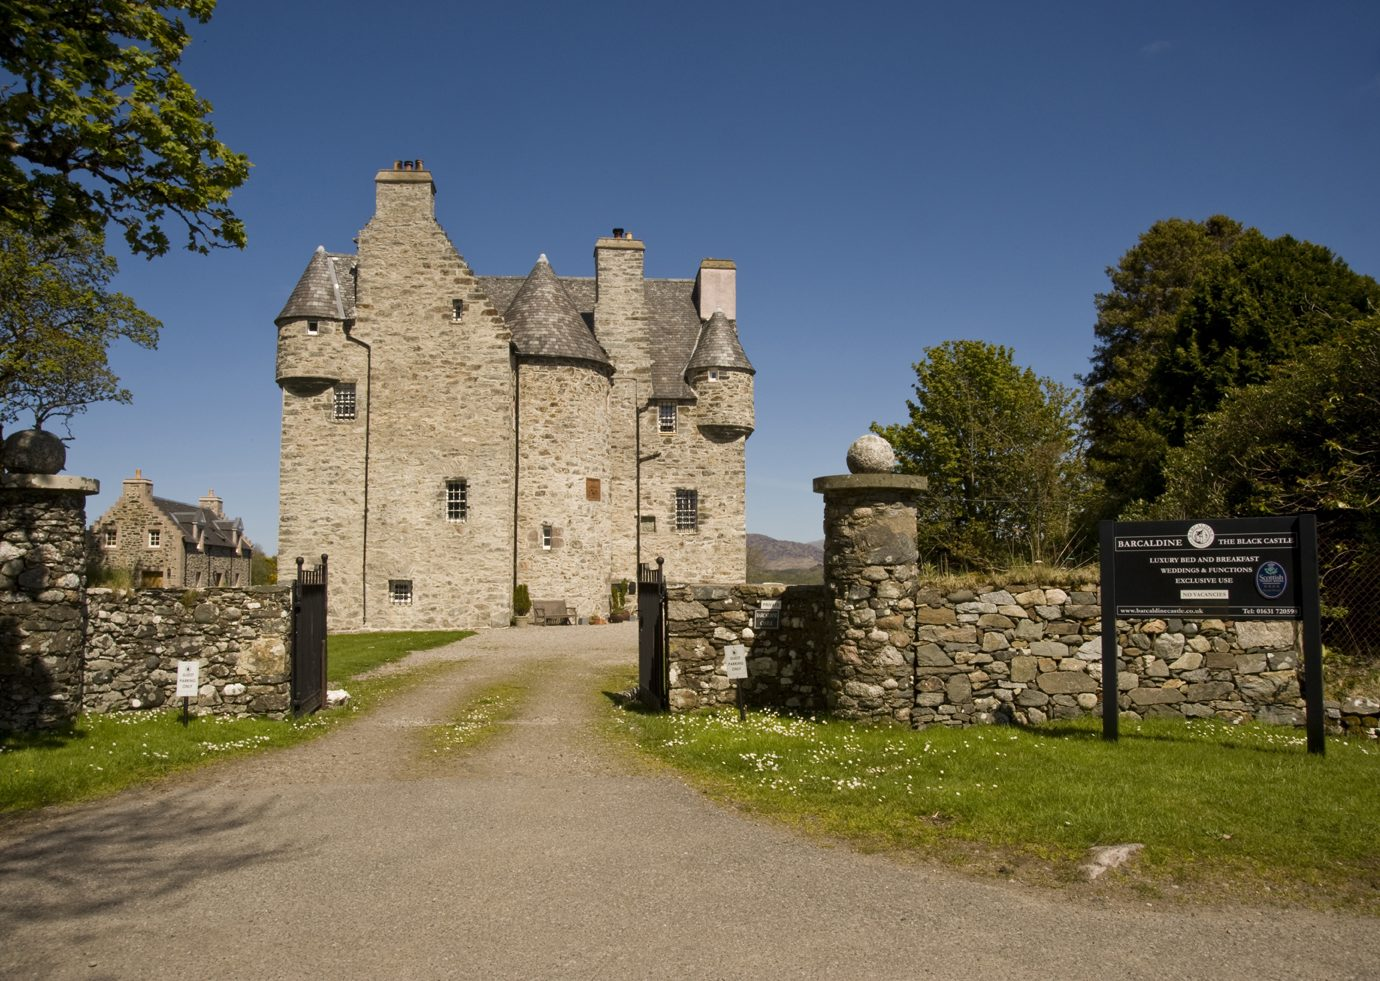 View of Barcaldine castle